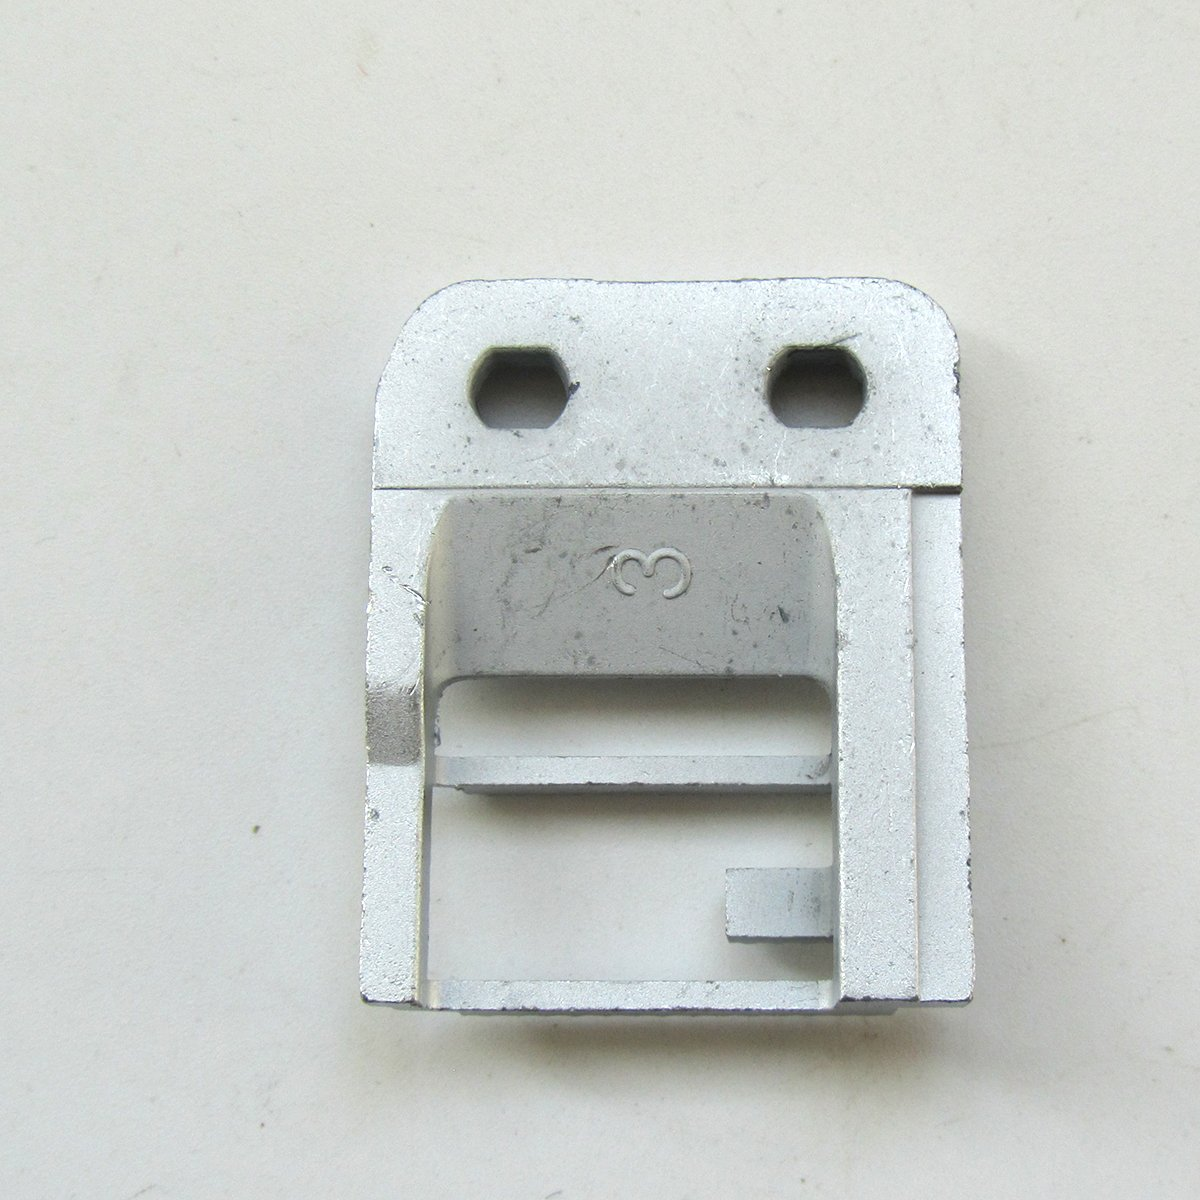 #735081004 1pcs FEED DOG for Kenmore 385.12116 385.12216 385.12314 385.12318 385.12514 385.12545 KUNPENG